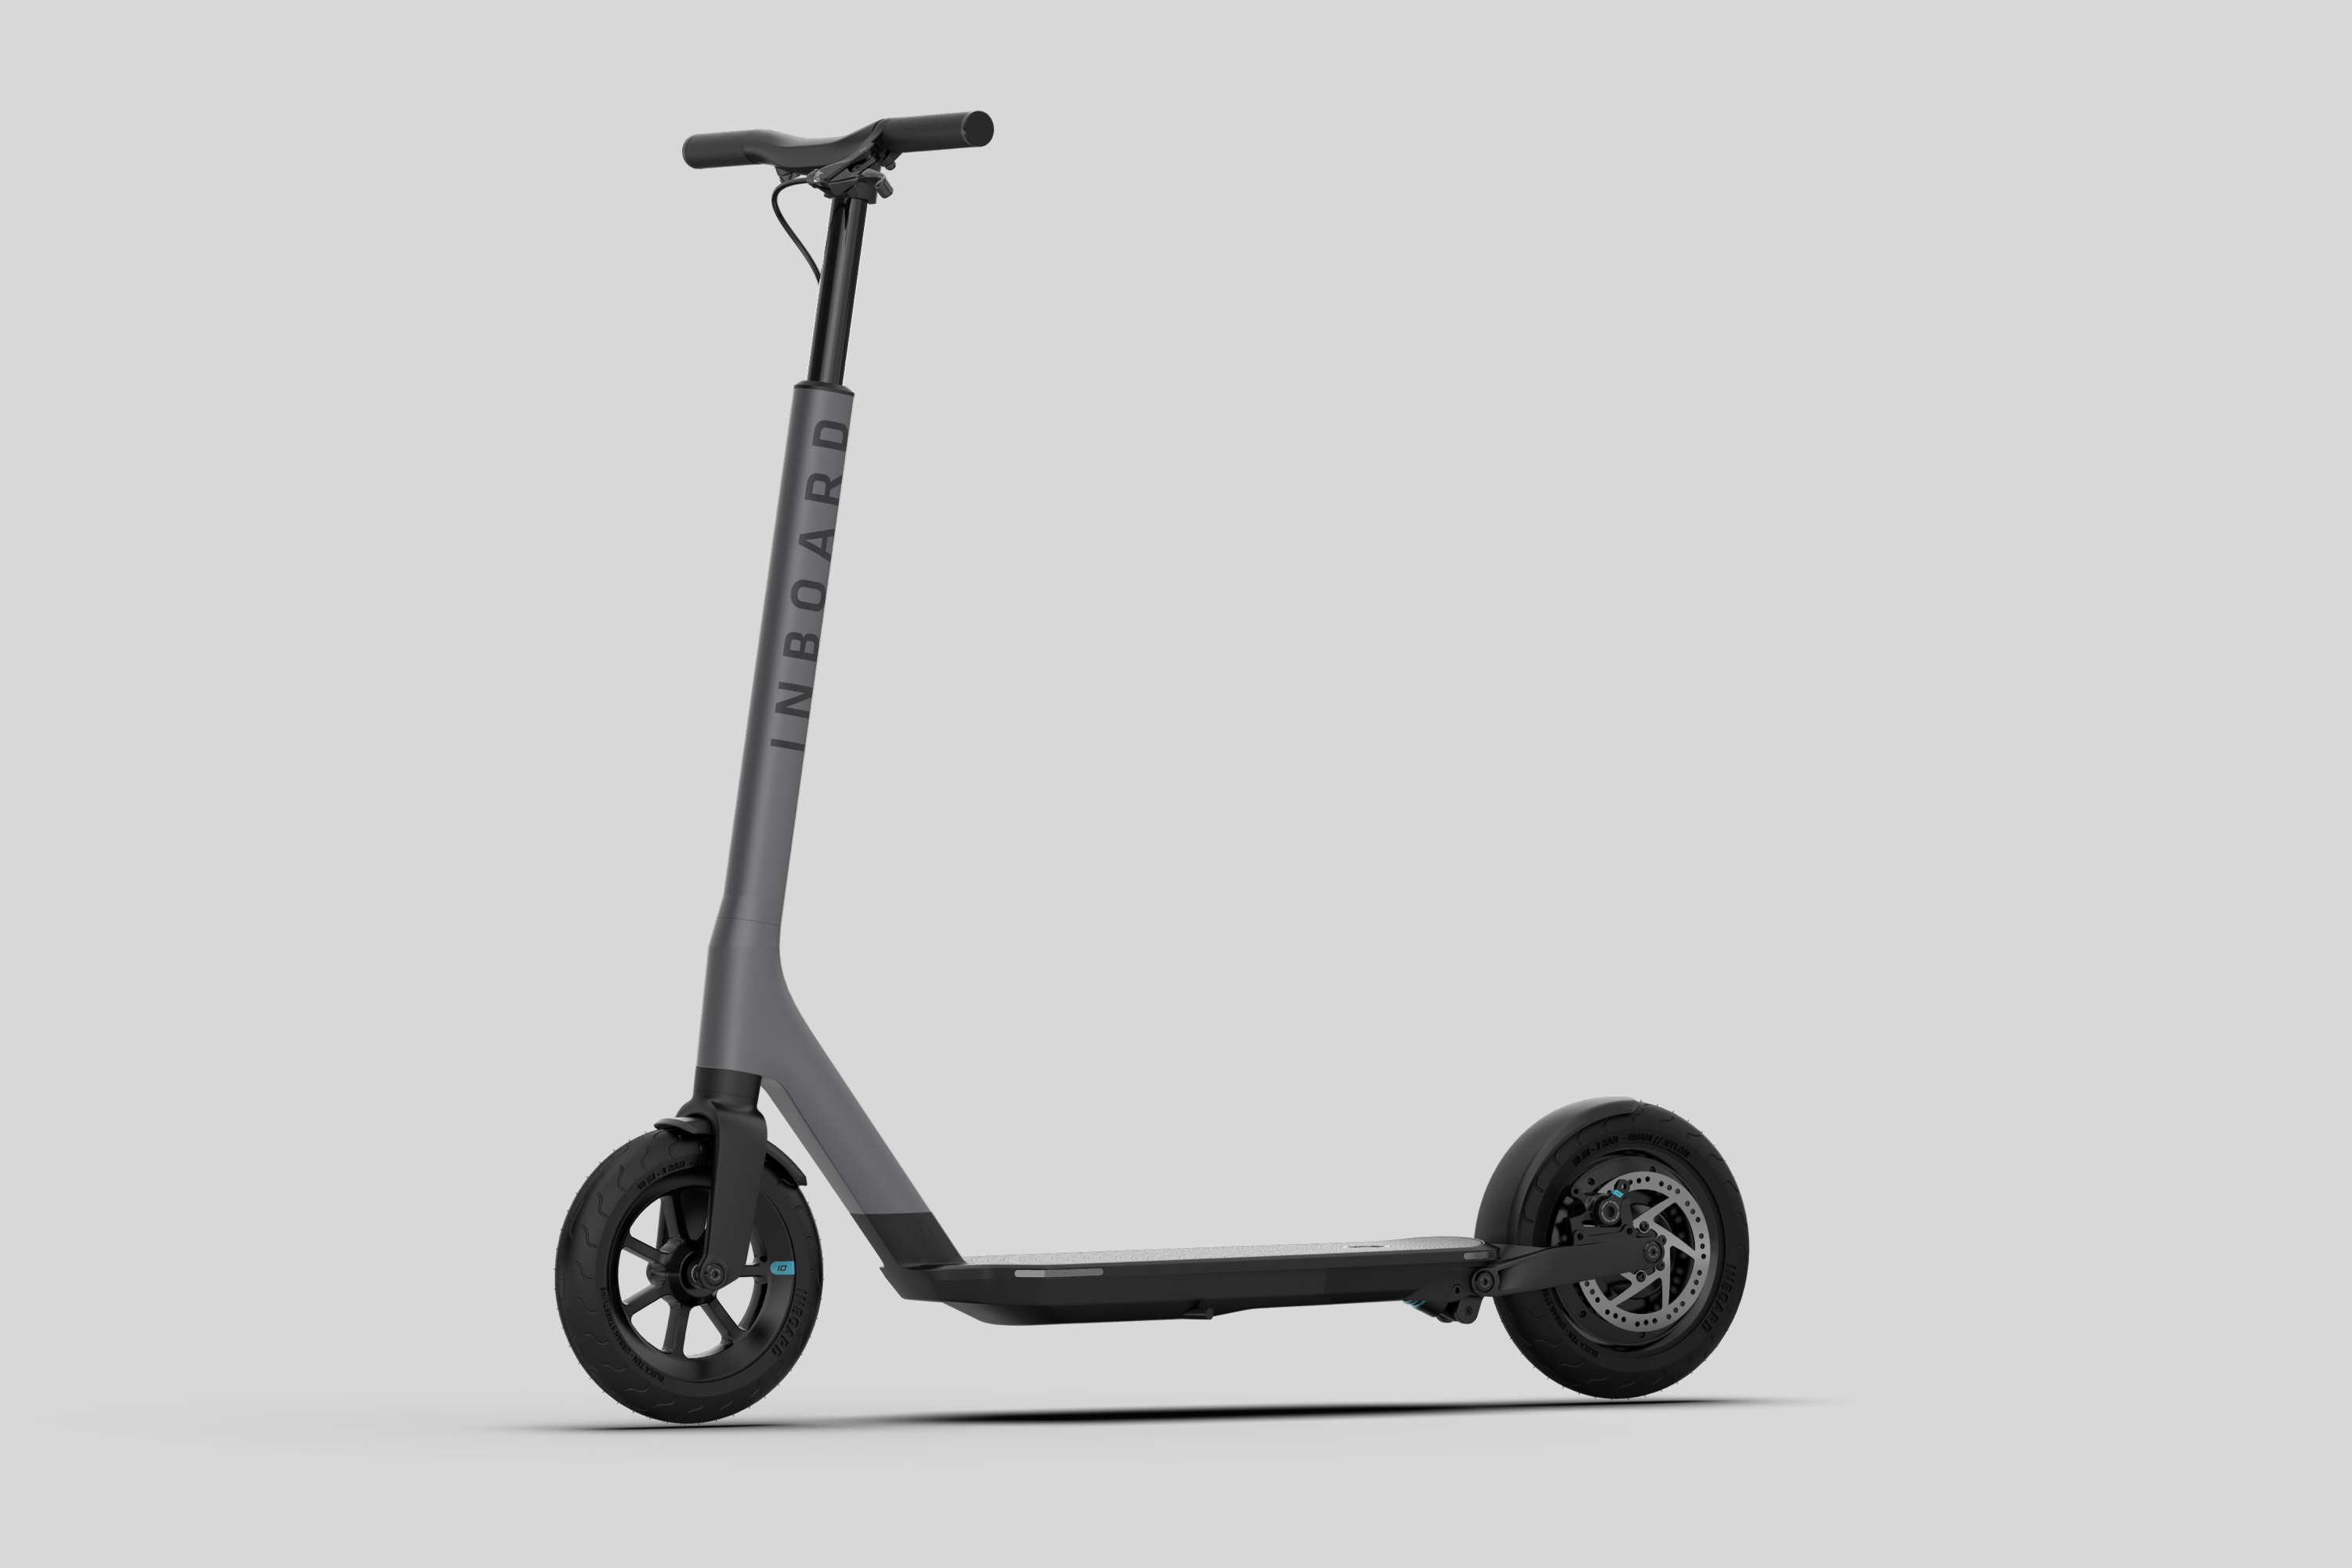 12 Volt Electric Scooters | Wiring Diagram Database Uberscoot W Evo Wiring Diagram on